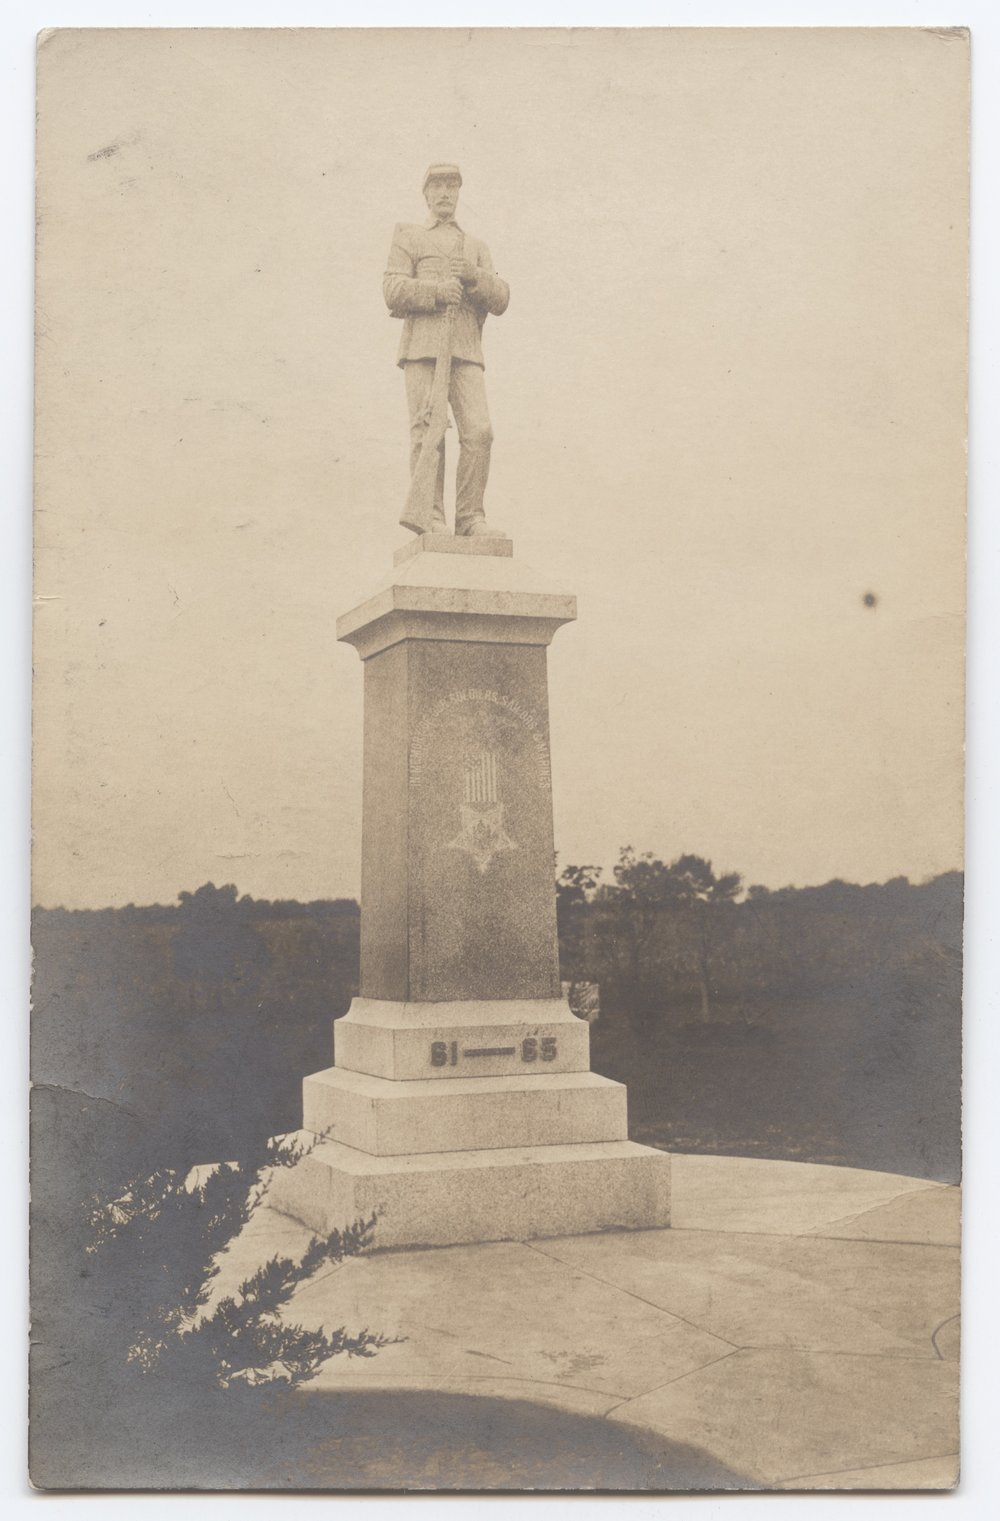 Soldiers Monument, Cowley County, Kansas - 1